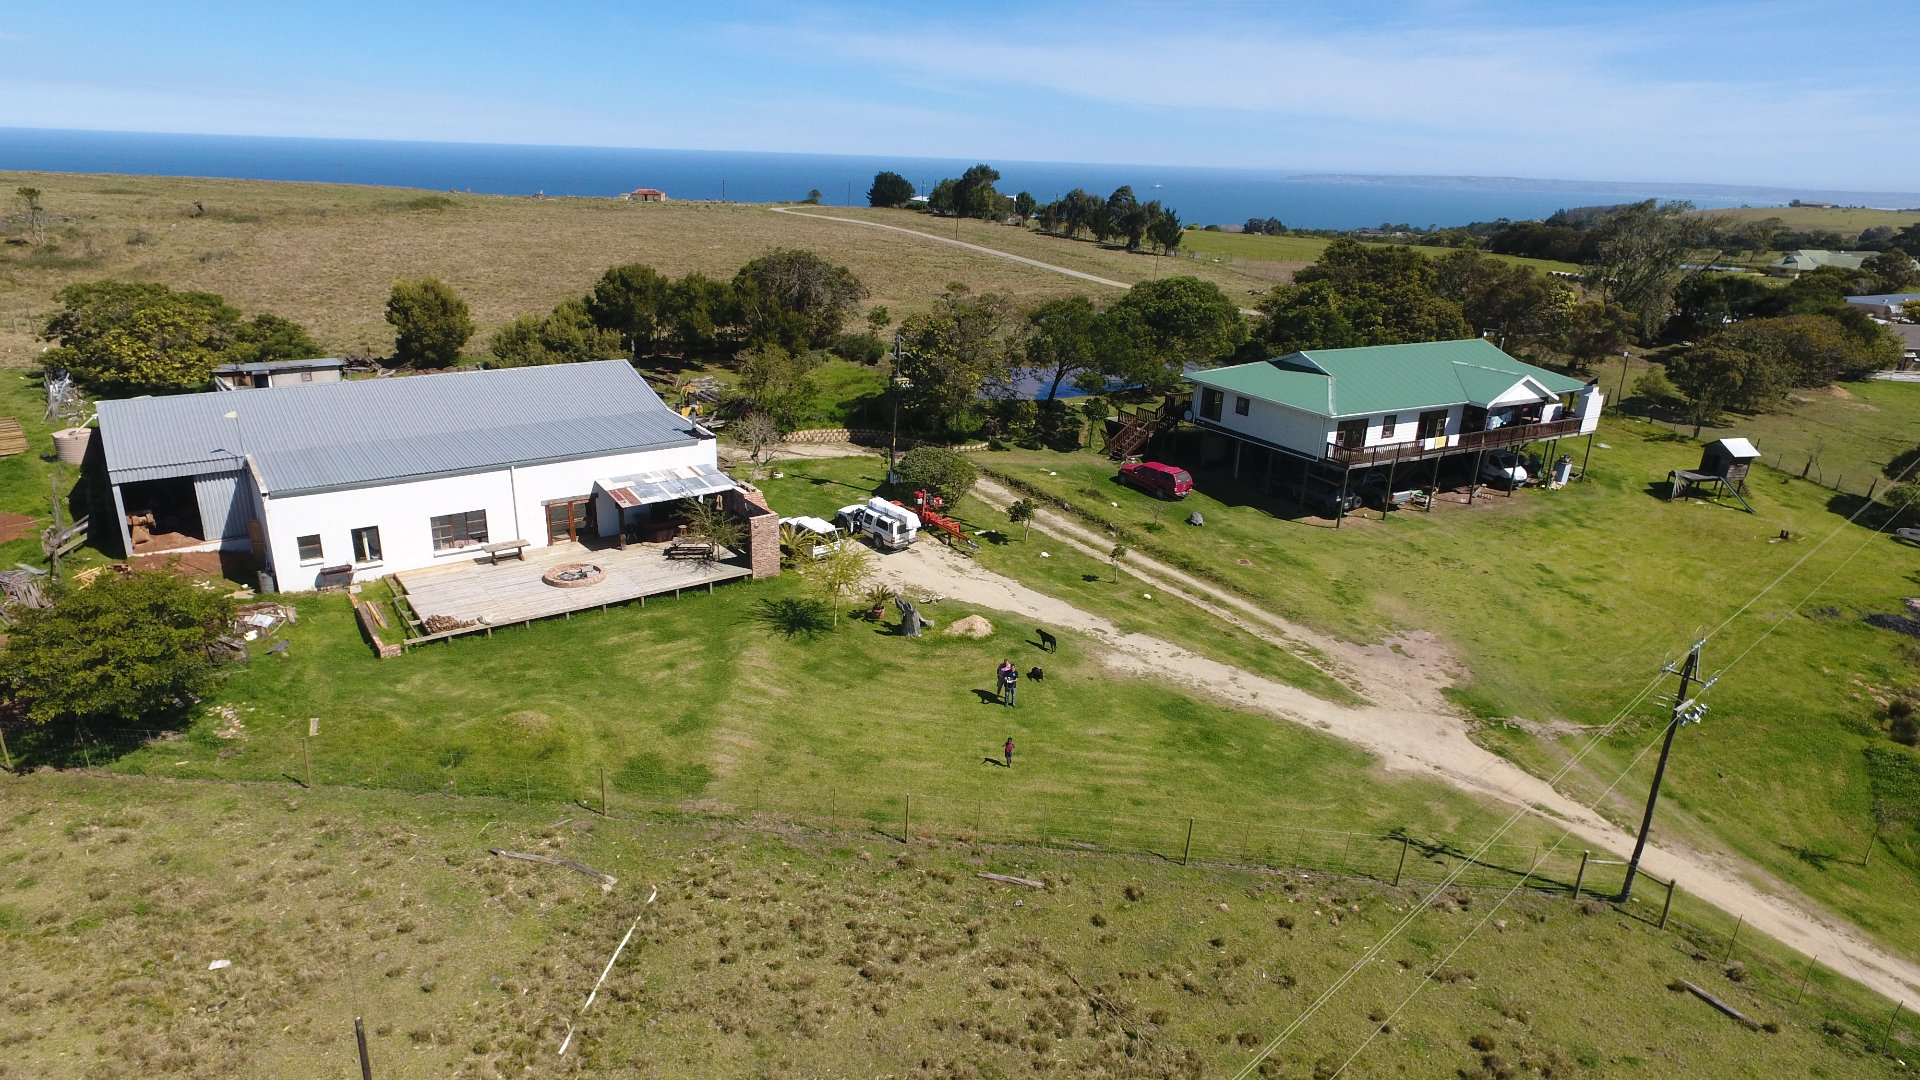 Property and Houses for sale in Western Cape, Farms, 5 Bedrooms - ZAR 999,999,999